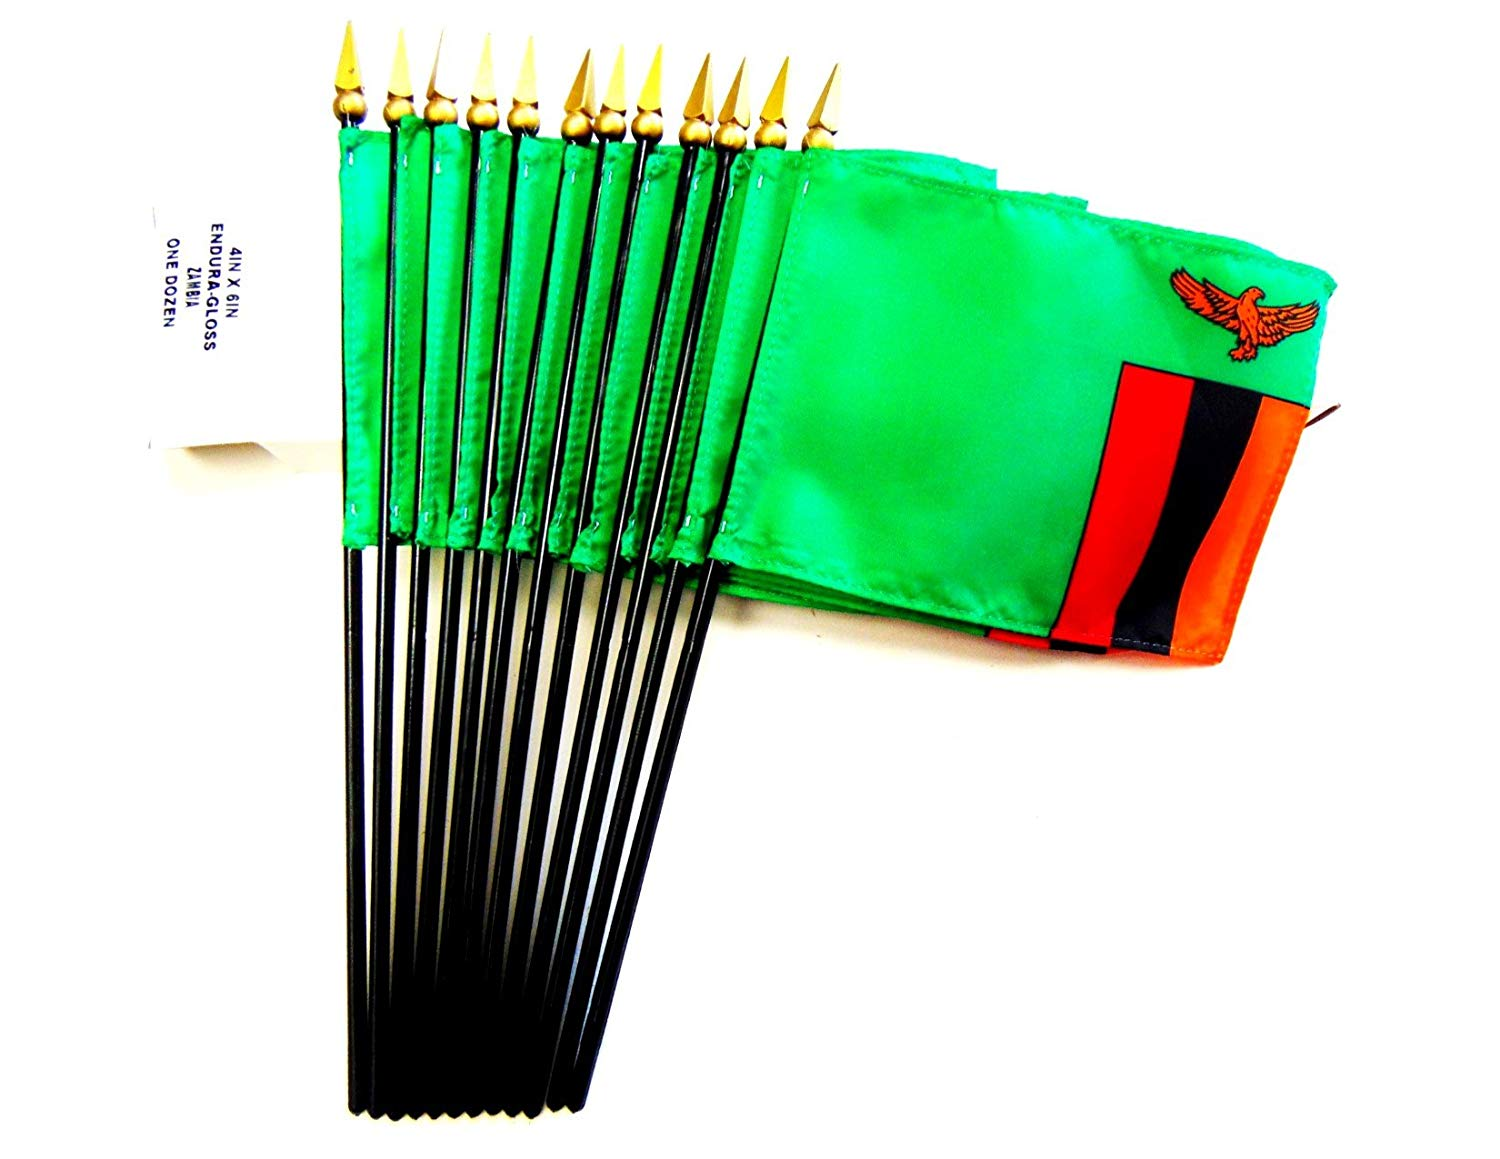 "MADE IN USA!! Box of 12 Zambia 4""x6"" Miniature Desk & Table Flags; 12 American Made Small Mini Zambian Flags in a Custom Made Cardboard Box Specifically Made for These Flags"